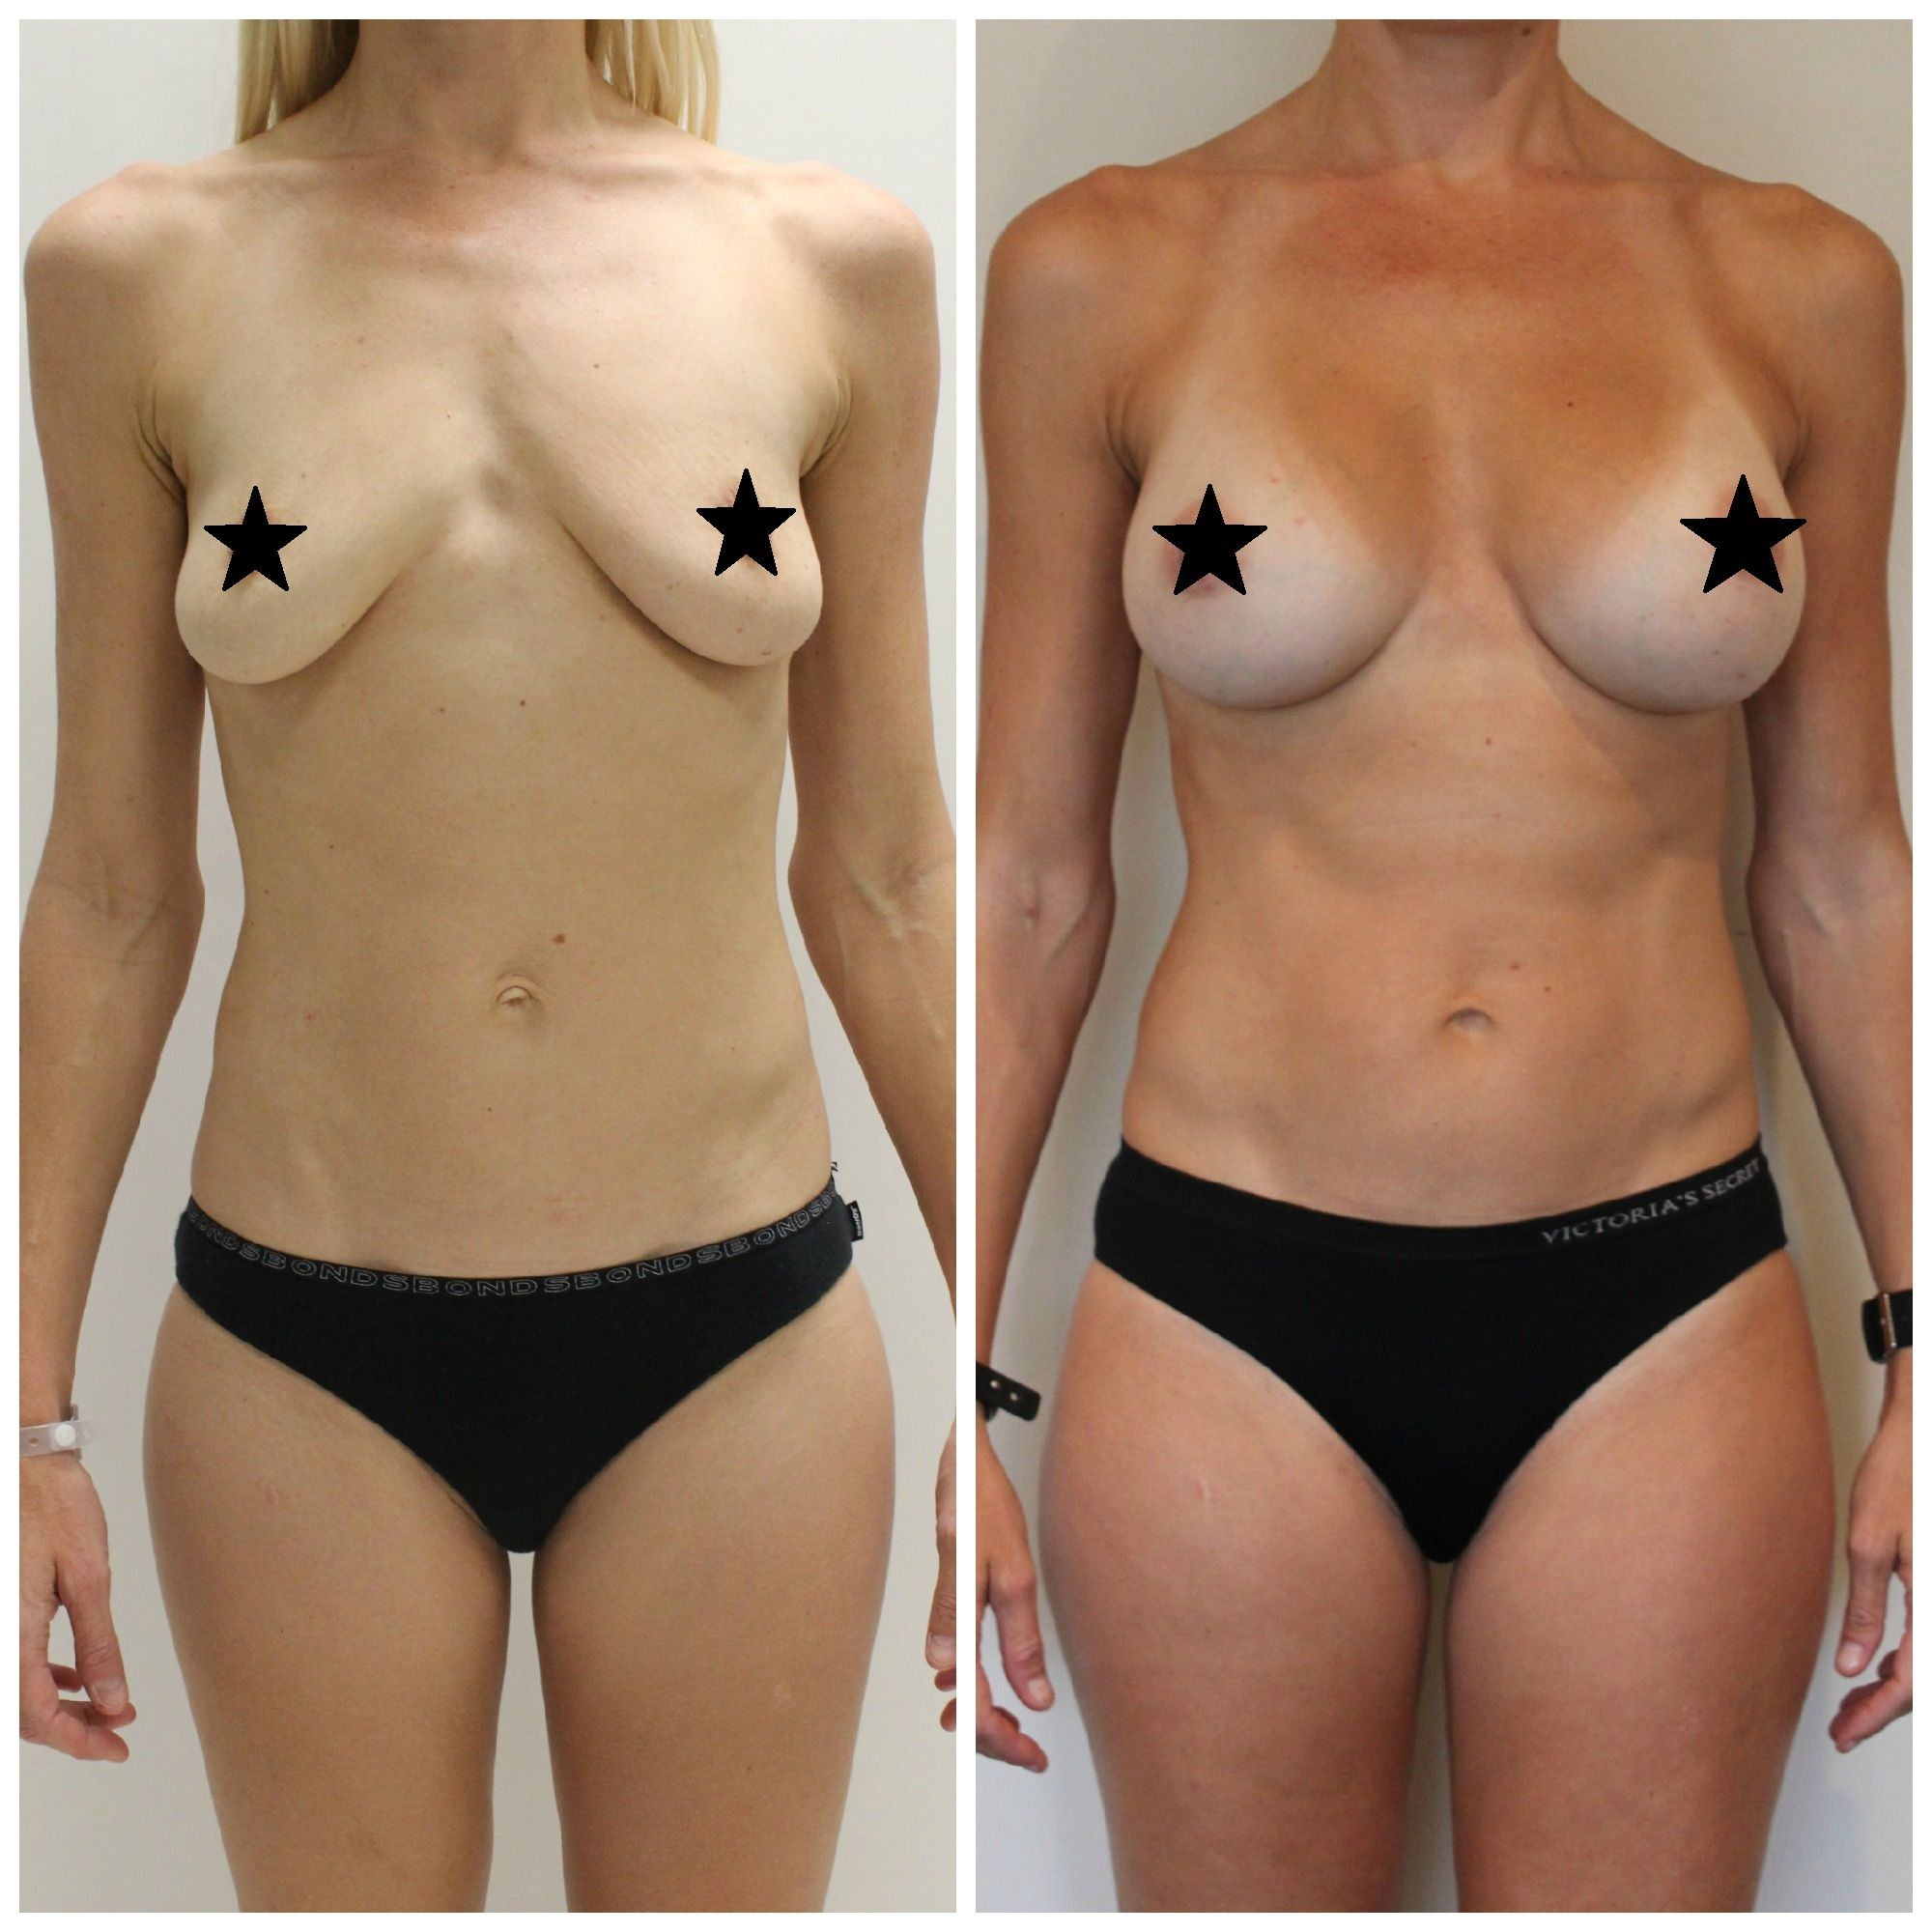 Speaking, breast augumentation b cup suggest